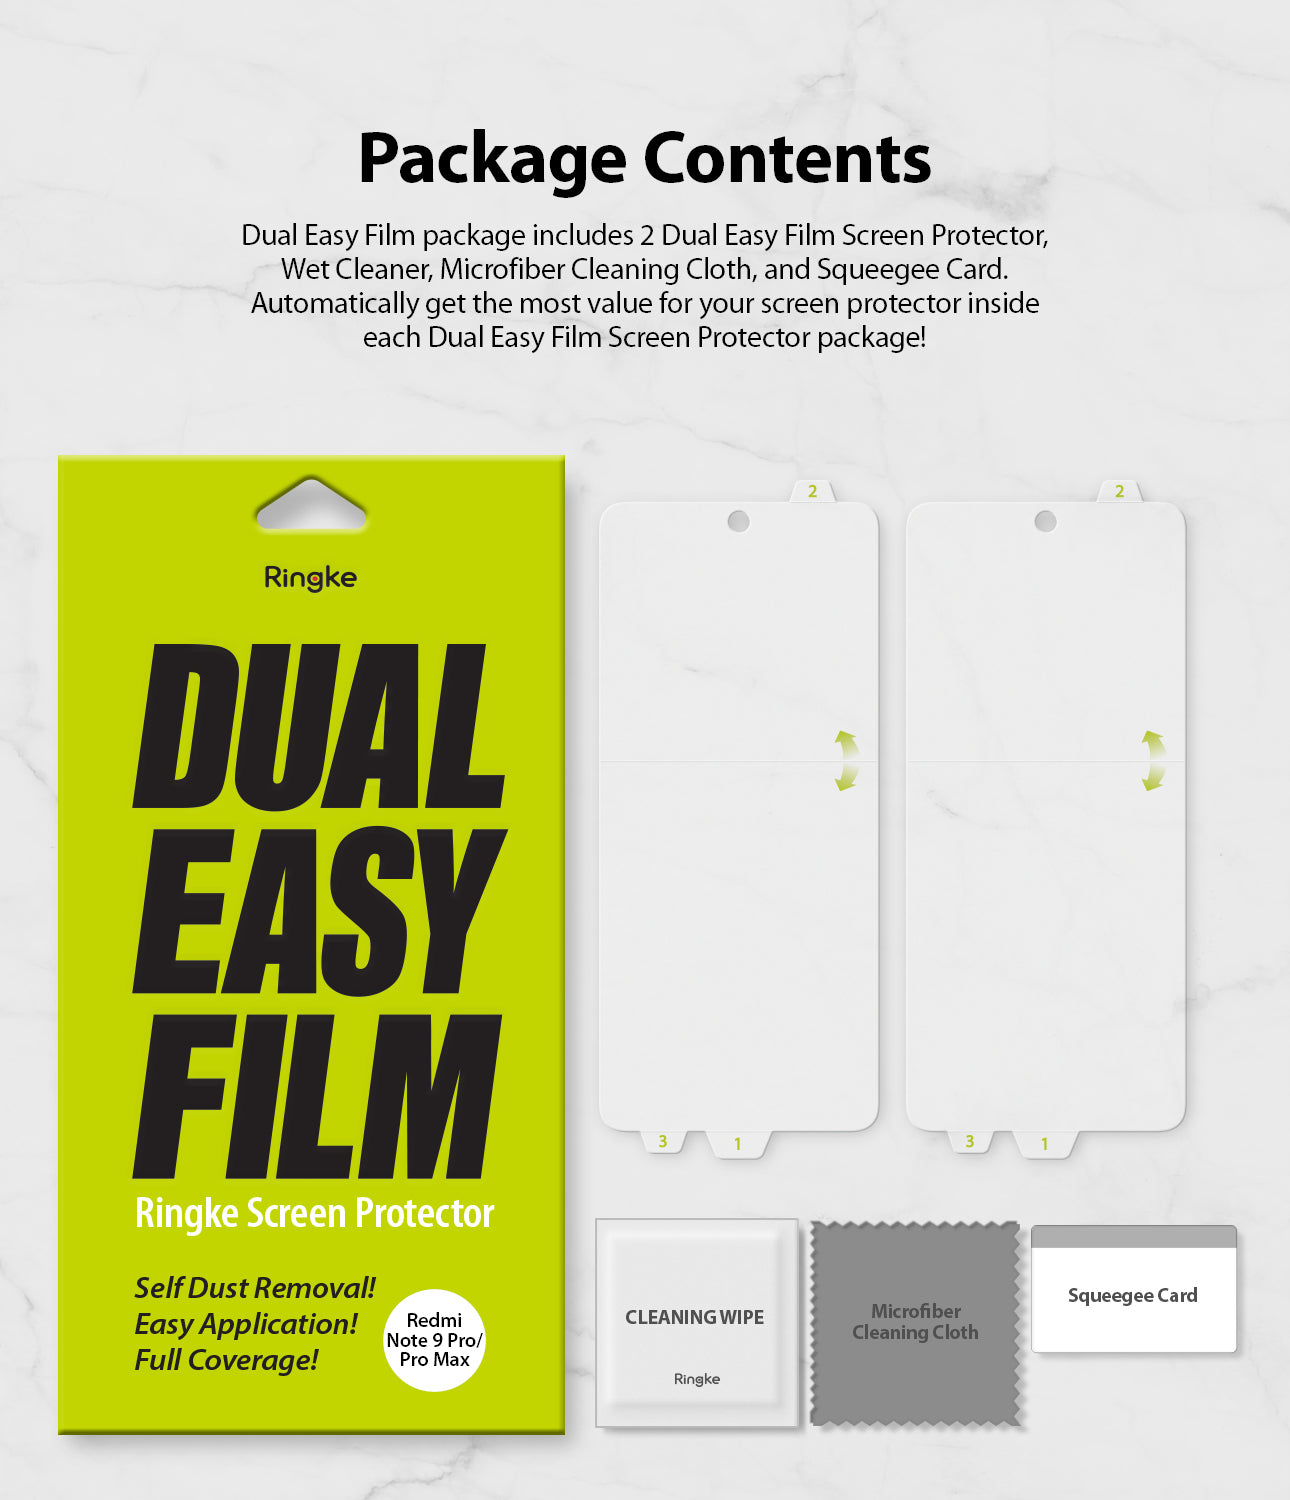 package includes 2 screen protectors